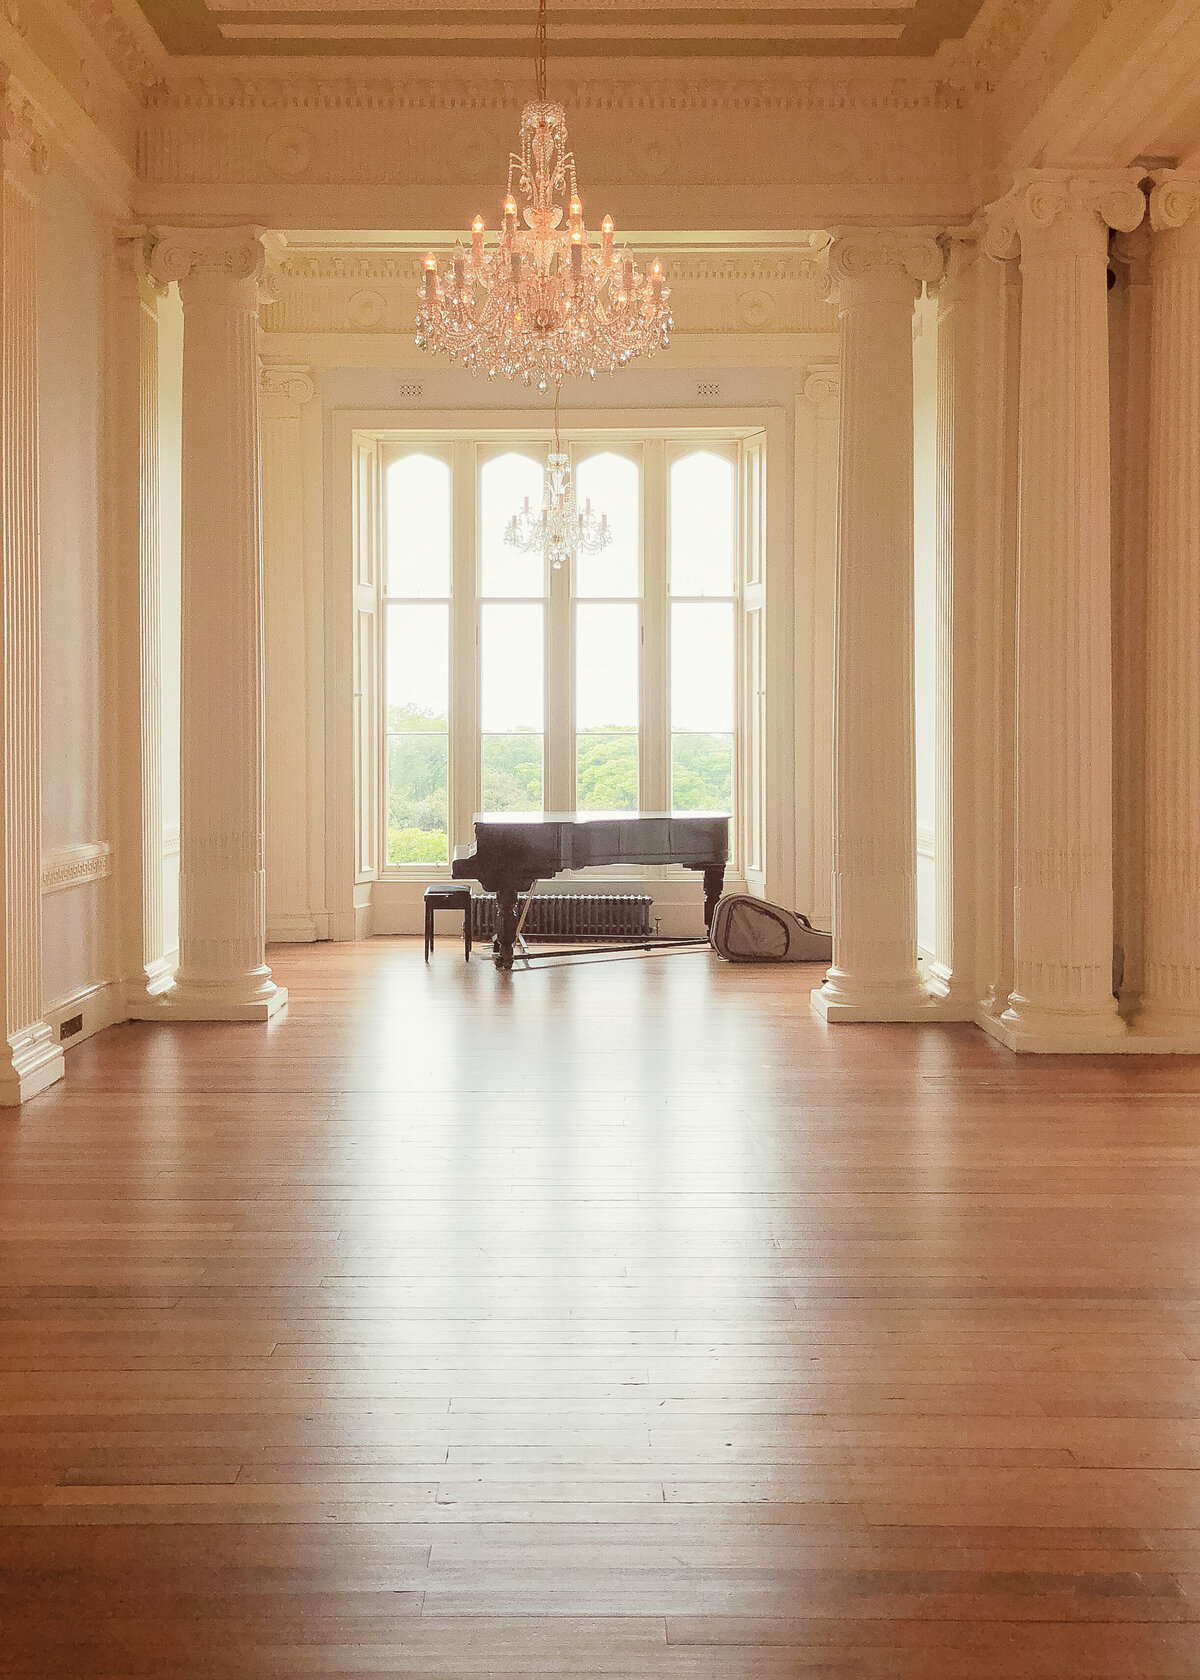 An empty ballrom in a private residence hold a grand piano and crystal chandelier.